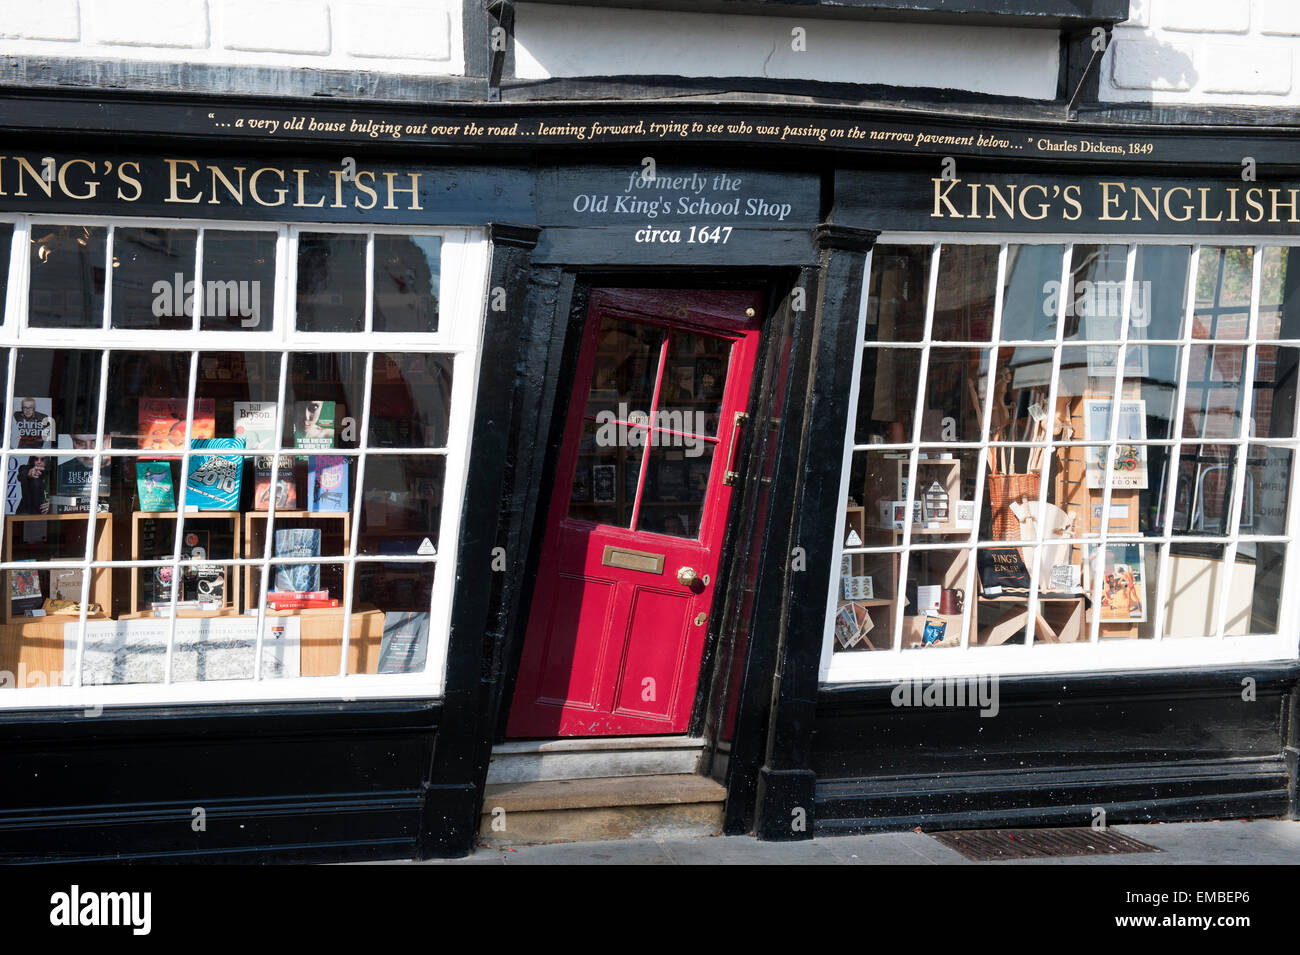 The crooked door of the Old Kingu0027s school shop in Canterbury Kent England europe & The crooked door of the Old Kingu0027s school shop in Canterbury Kent ...